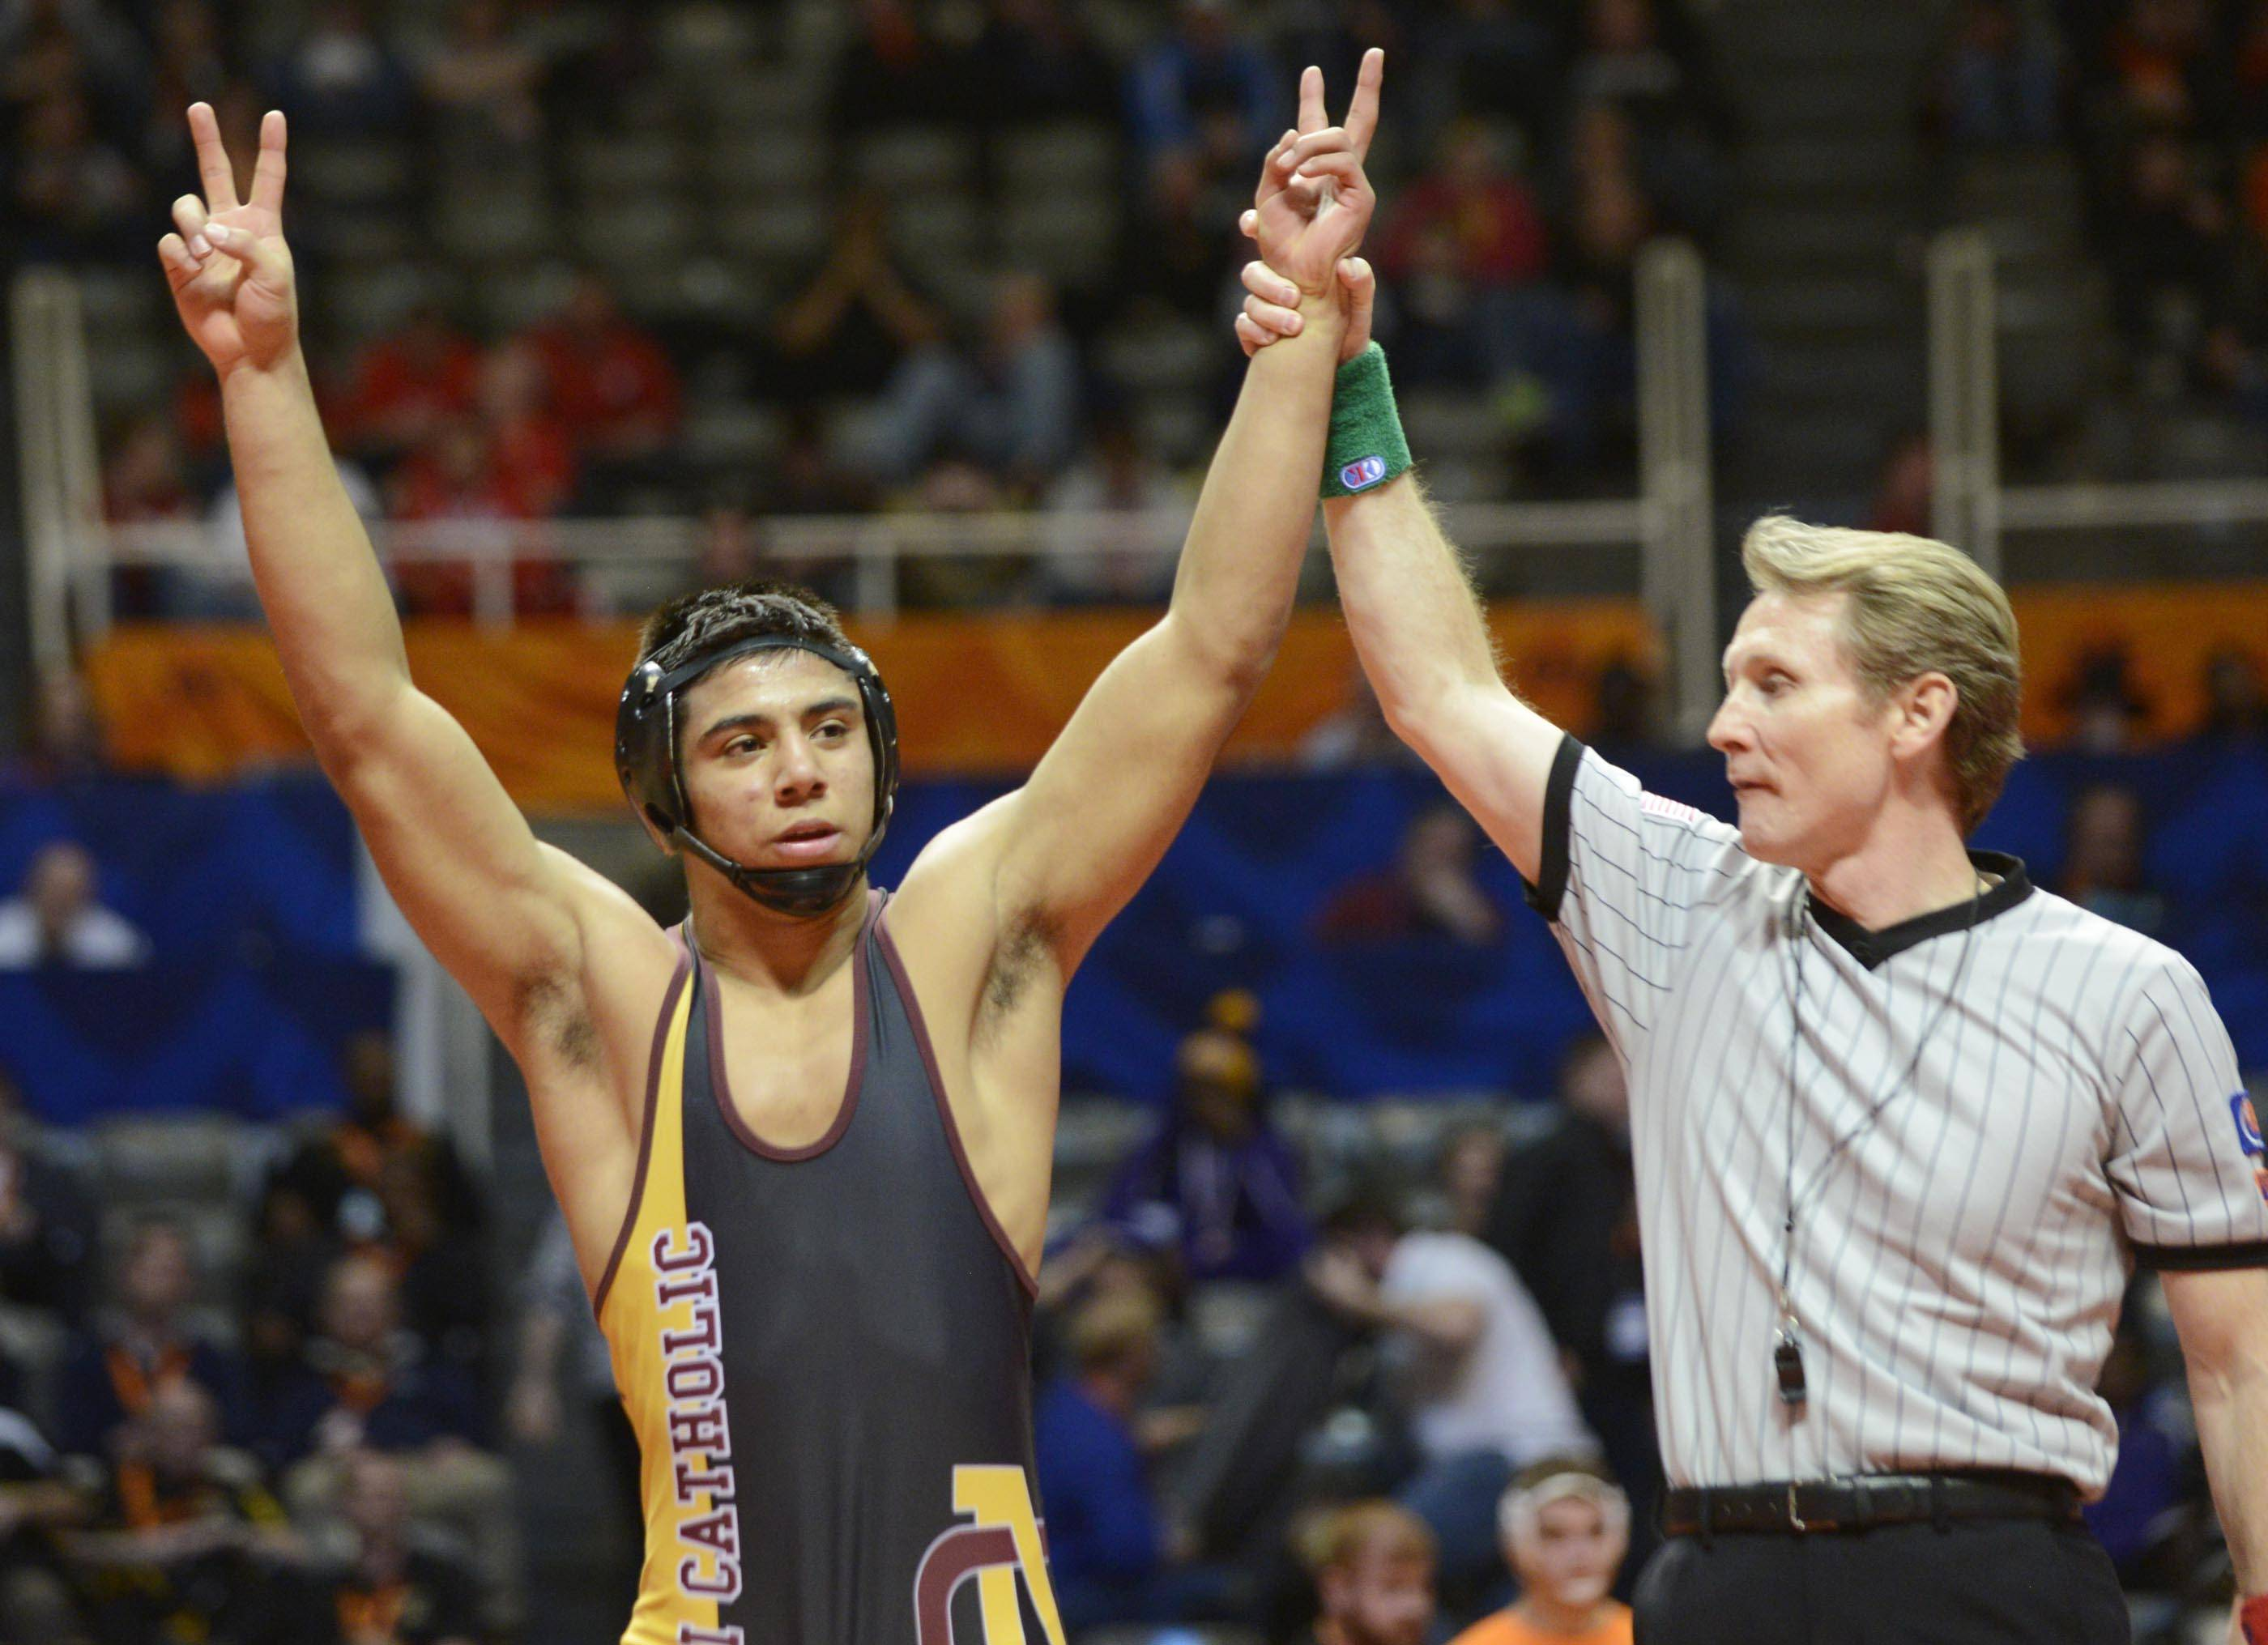 Xavier Montalvo of Lombard Montini Catholic High School is declared the winner against Eric Schultz of Tinley Park High School Saturday in the 170-pound weight class championship match of the wrestling IHSA Class 2A state tournament at State Farm Center in Champaign.